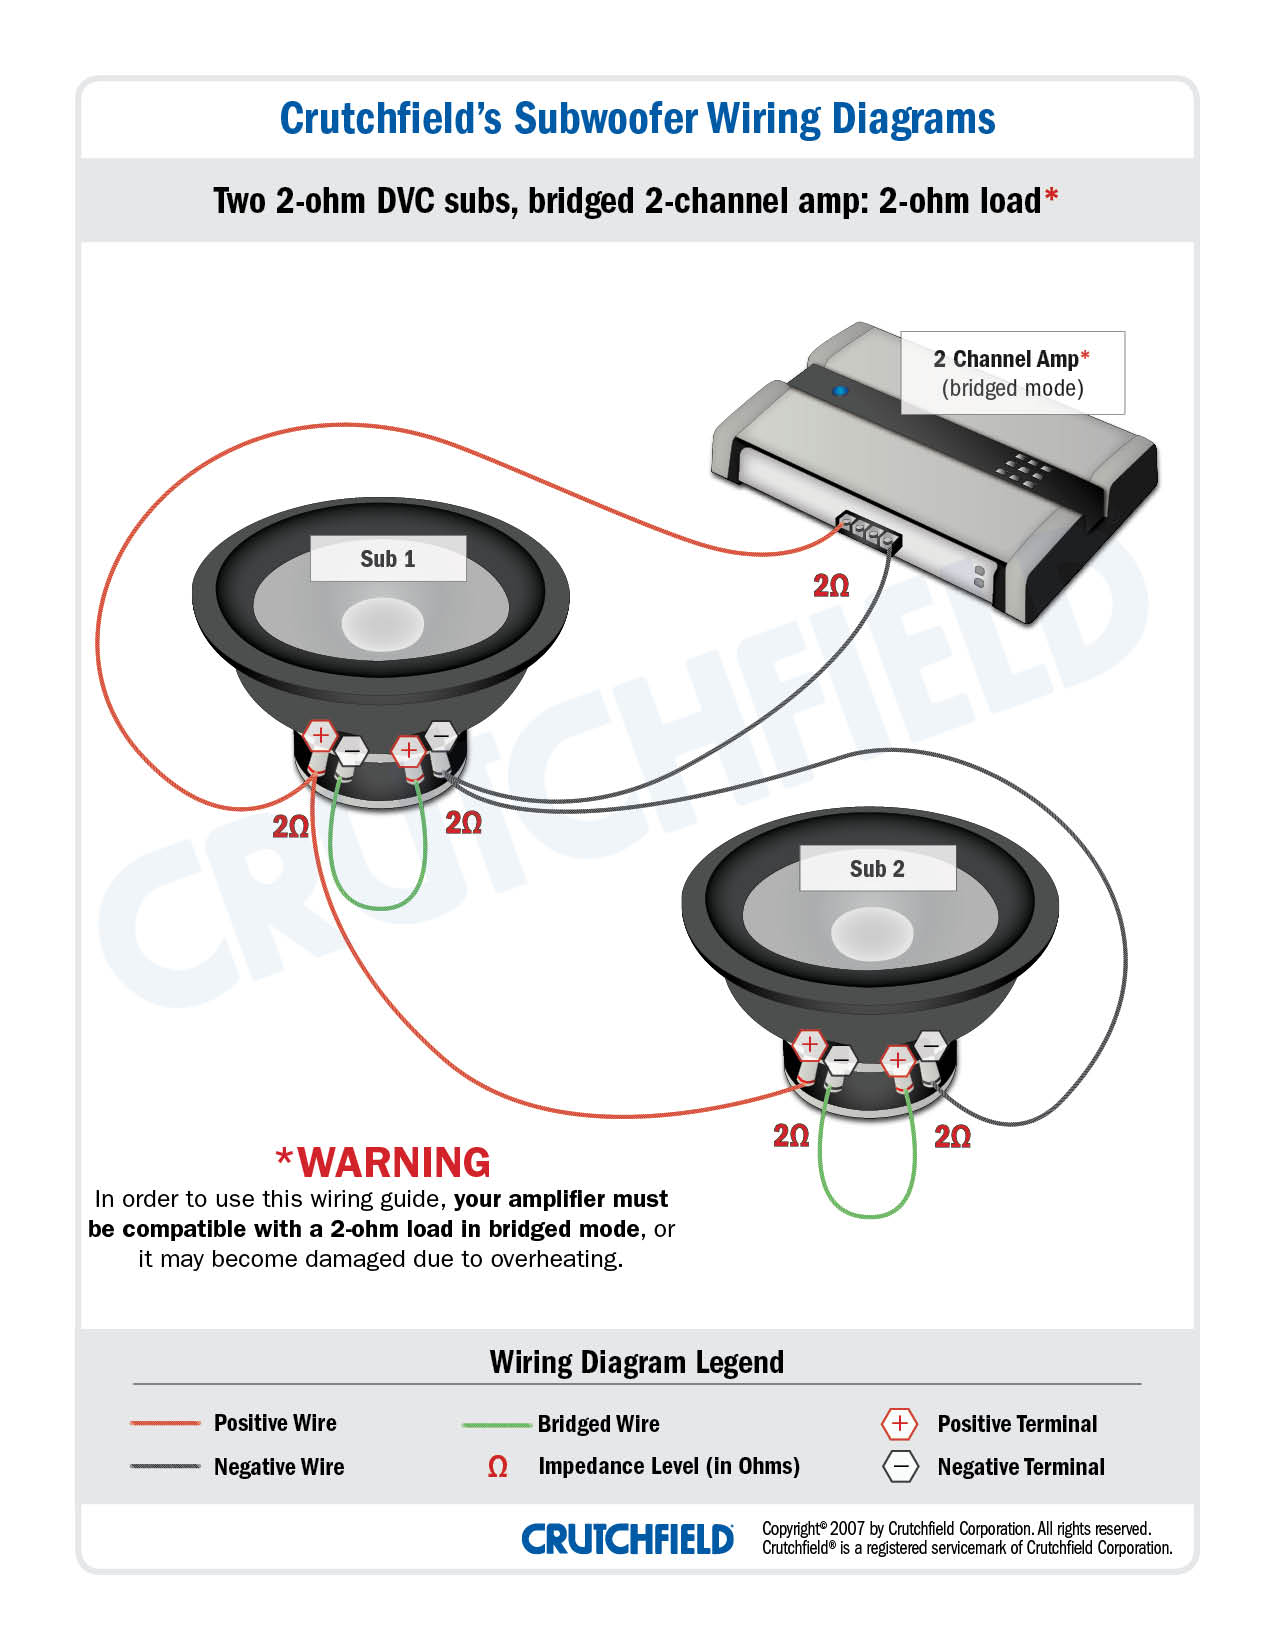 dual 2 ohm wiring diagram images subwoofer wiring diagram get image about wiring diagram